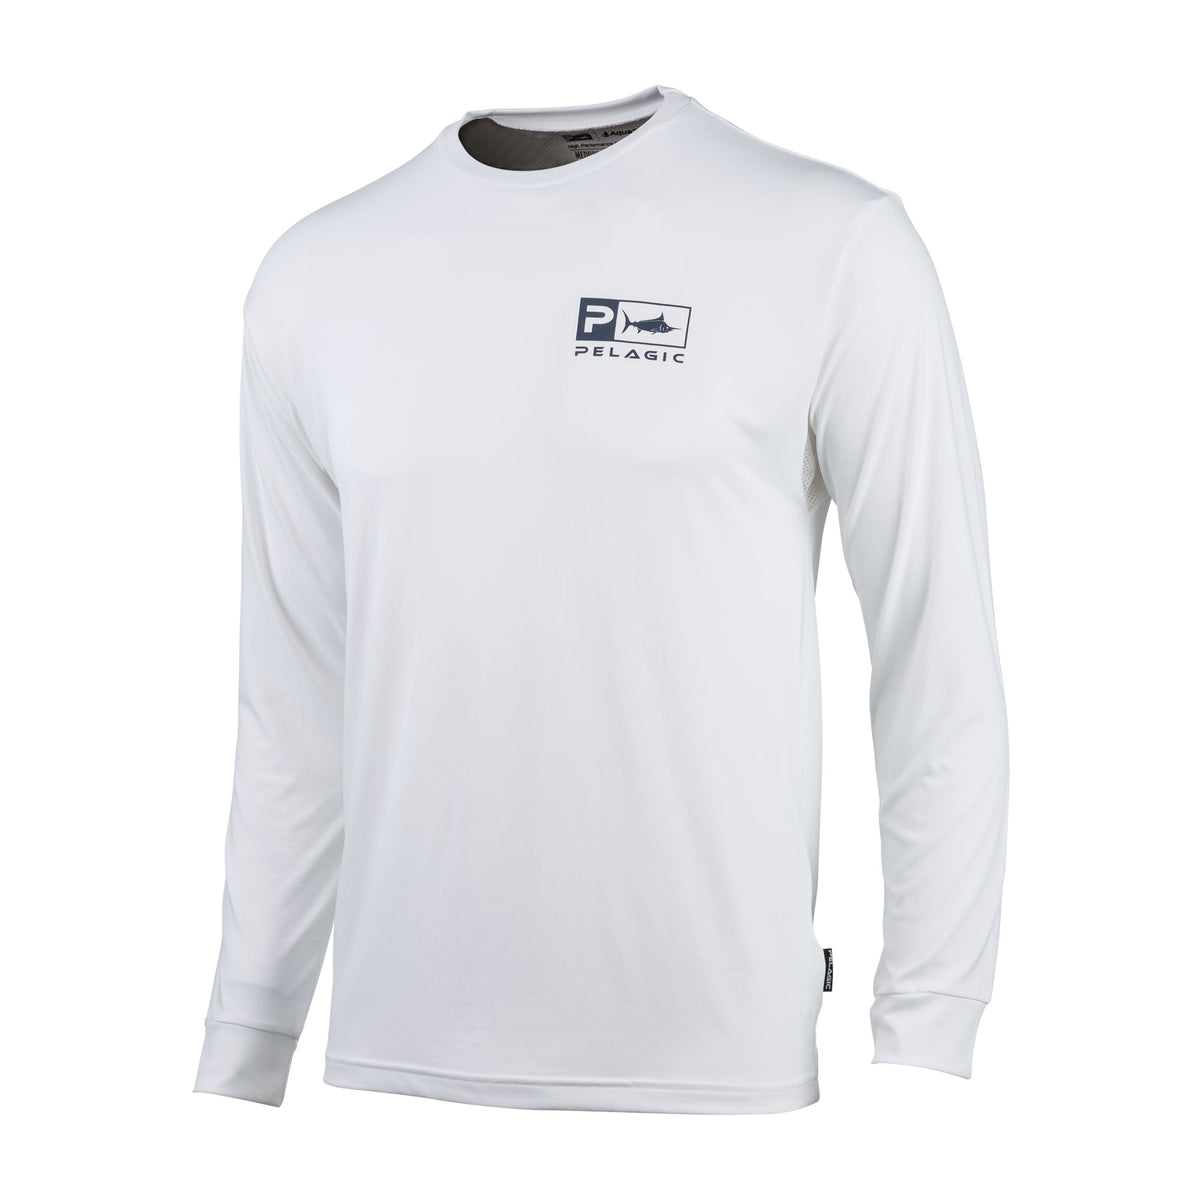 Aquatek Icon Long Sleeve Performance Fishing Shirt Big Image - 2